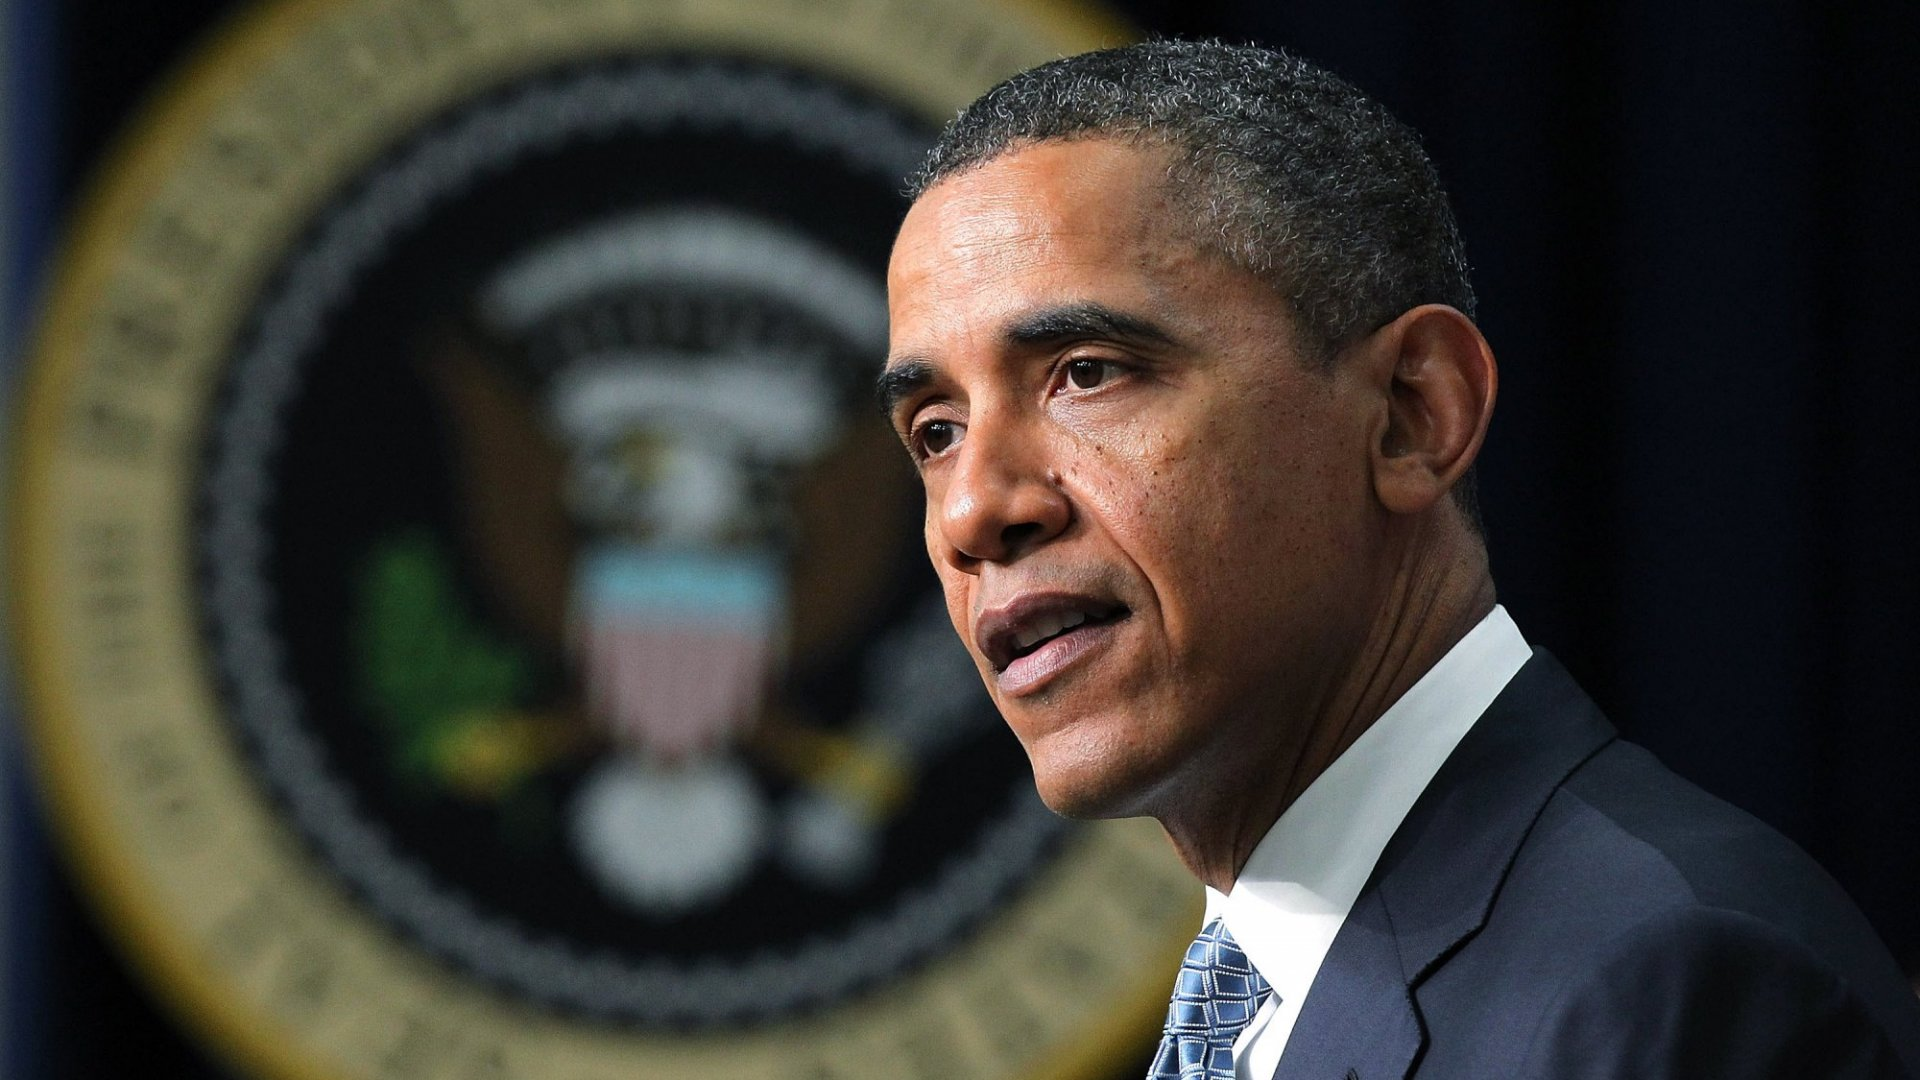 Obama Highlights Benefits of Trade on Small Businesses